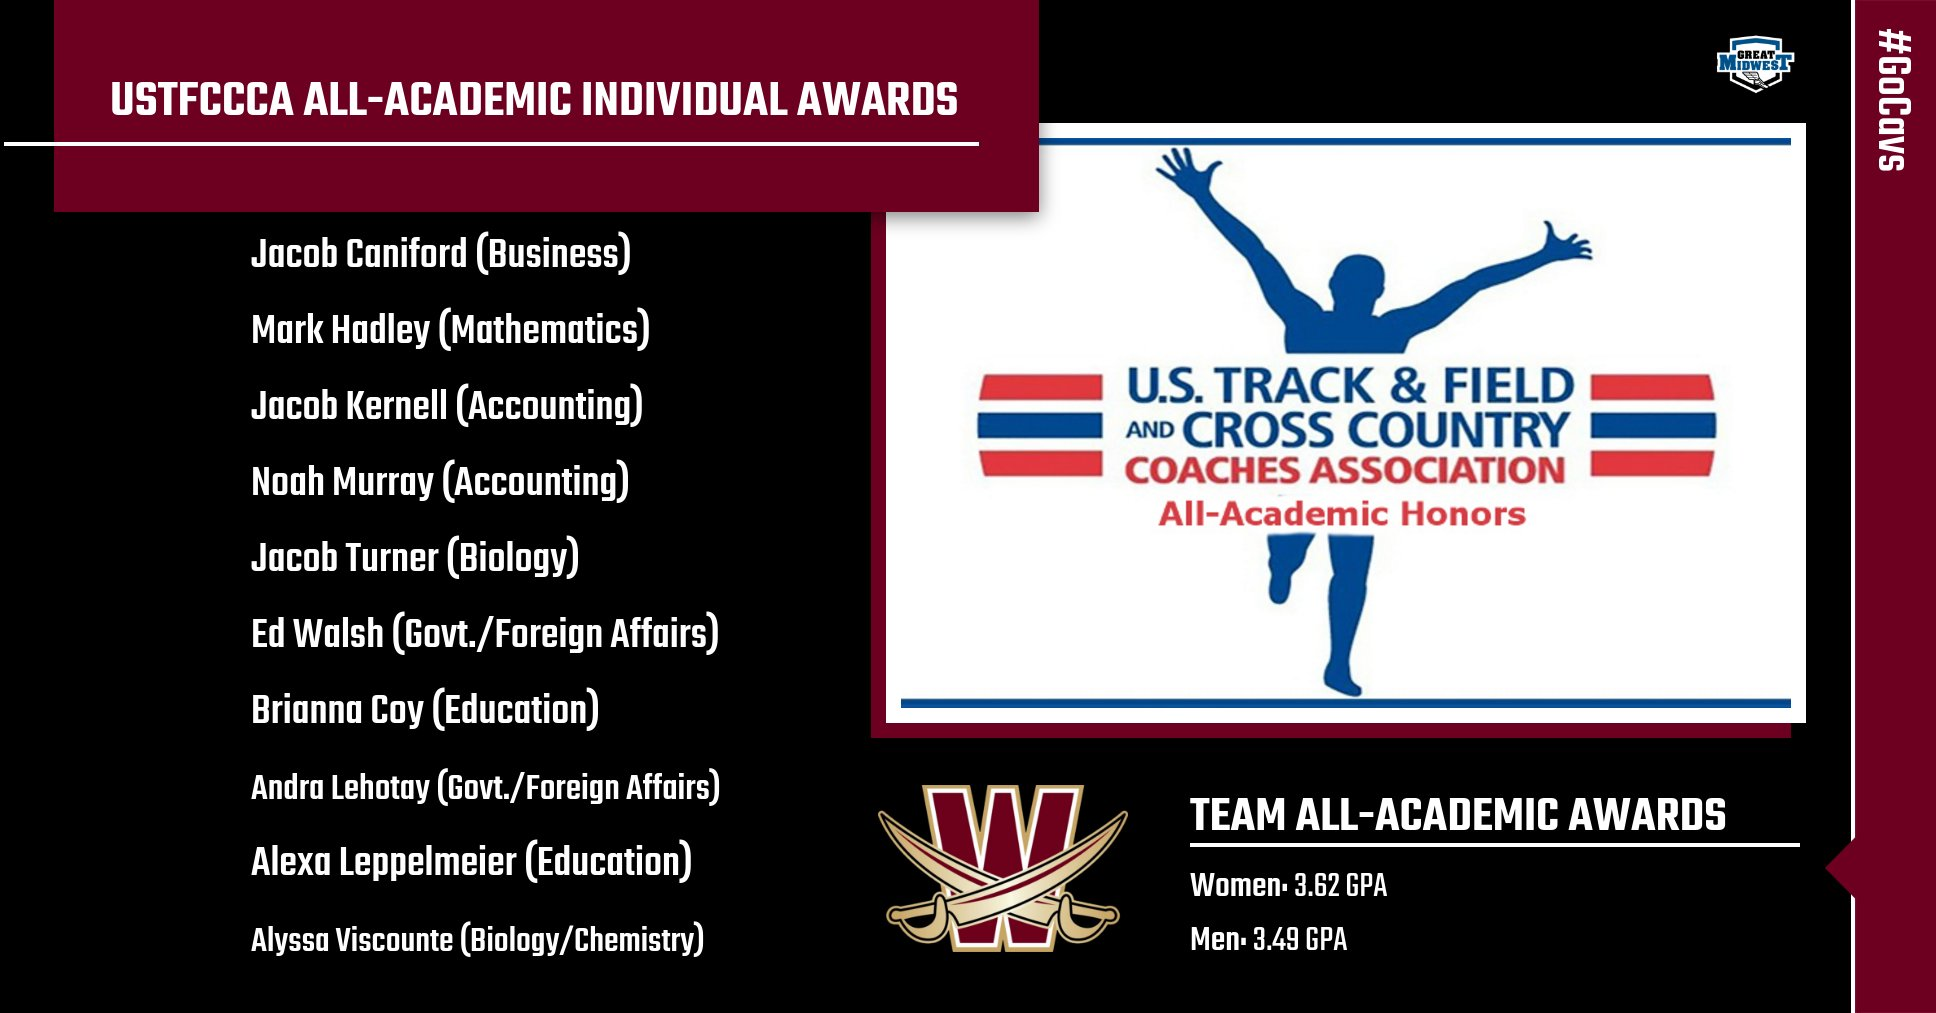 Men's and Women's XC Named USTFCCCA All-Academic Teams